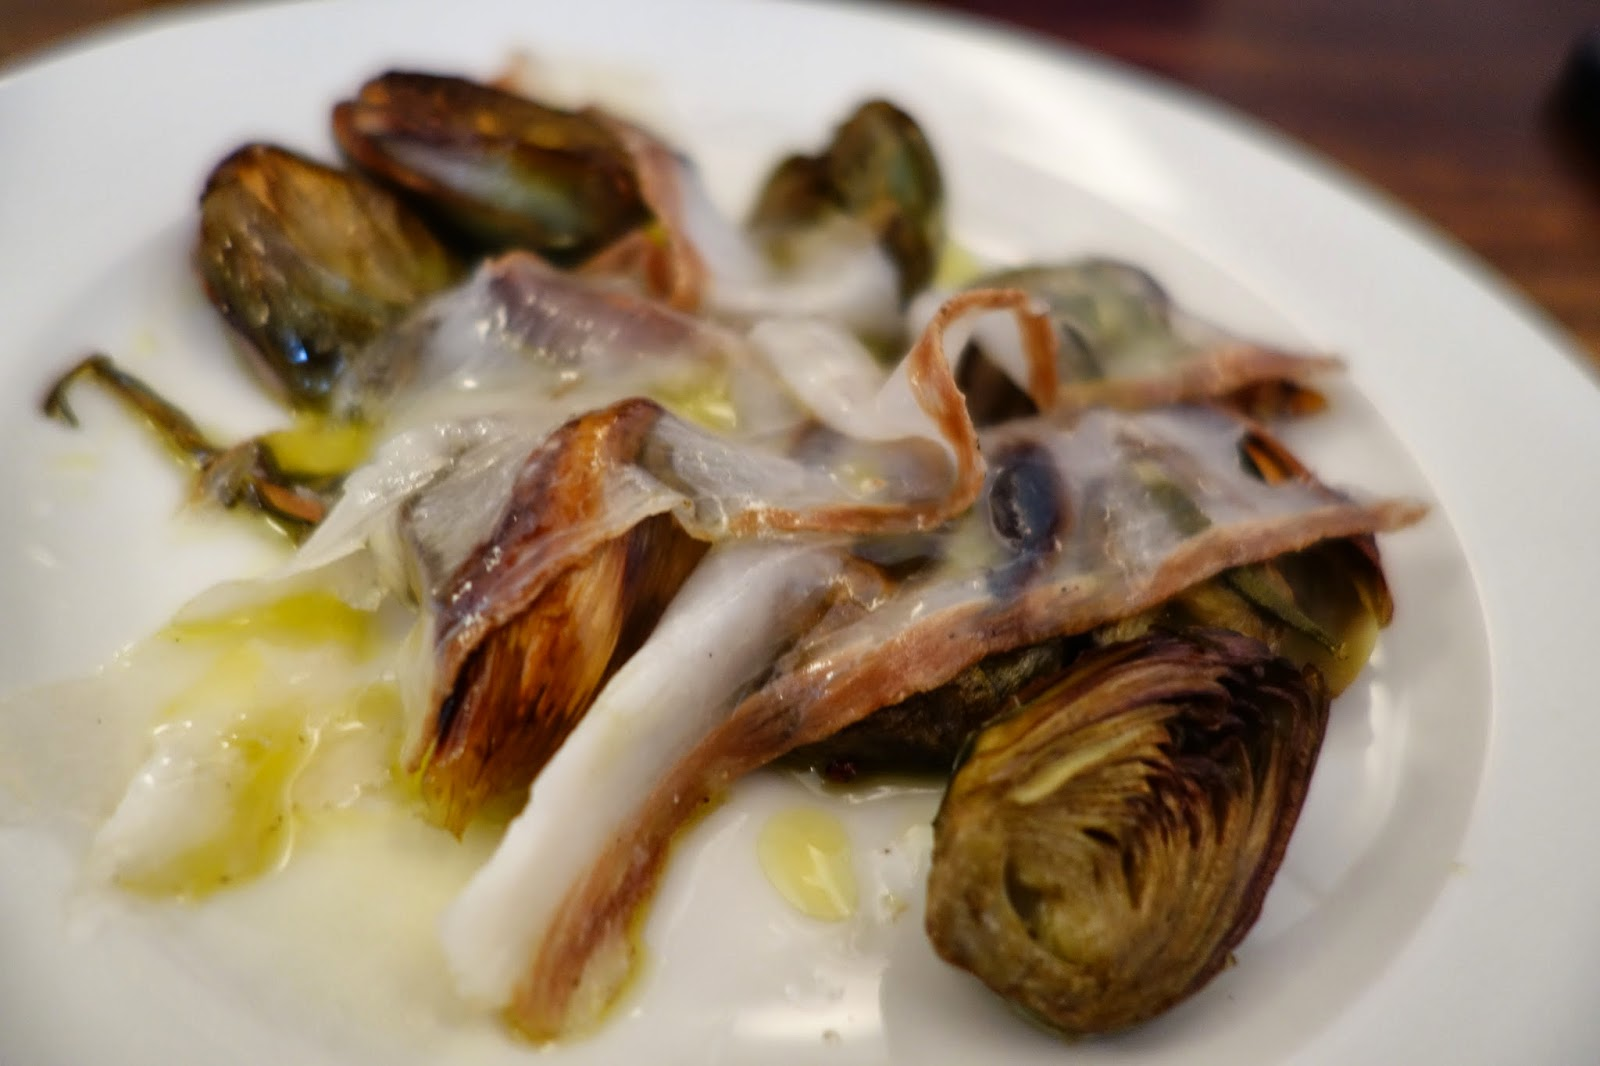 Artichokes at Ducksoup